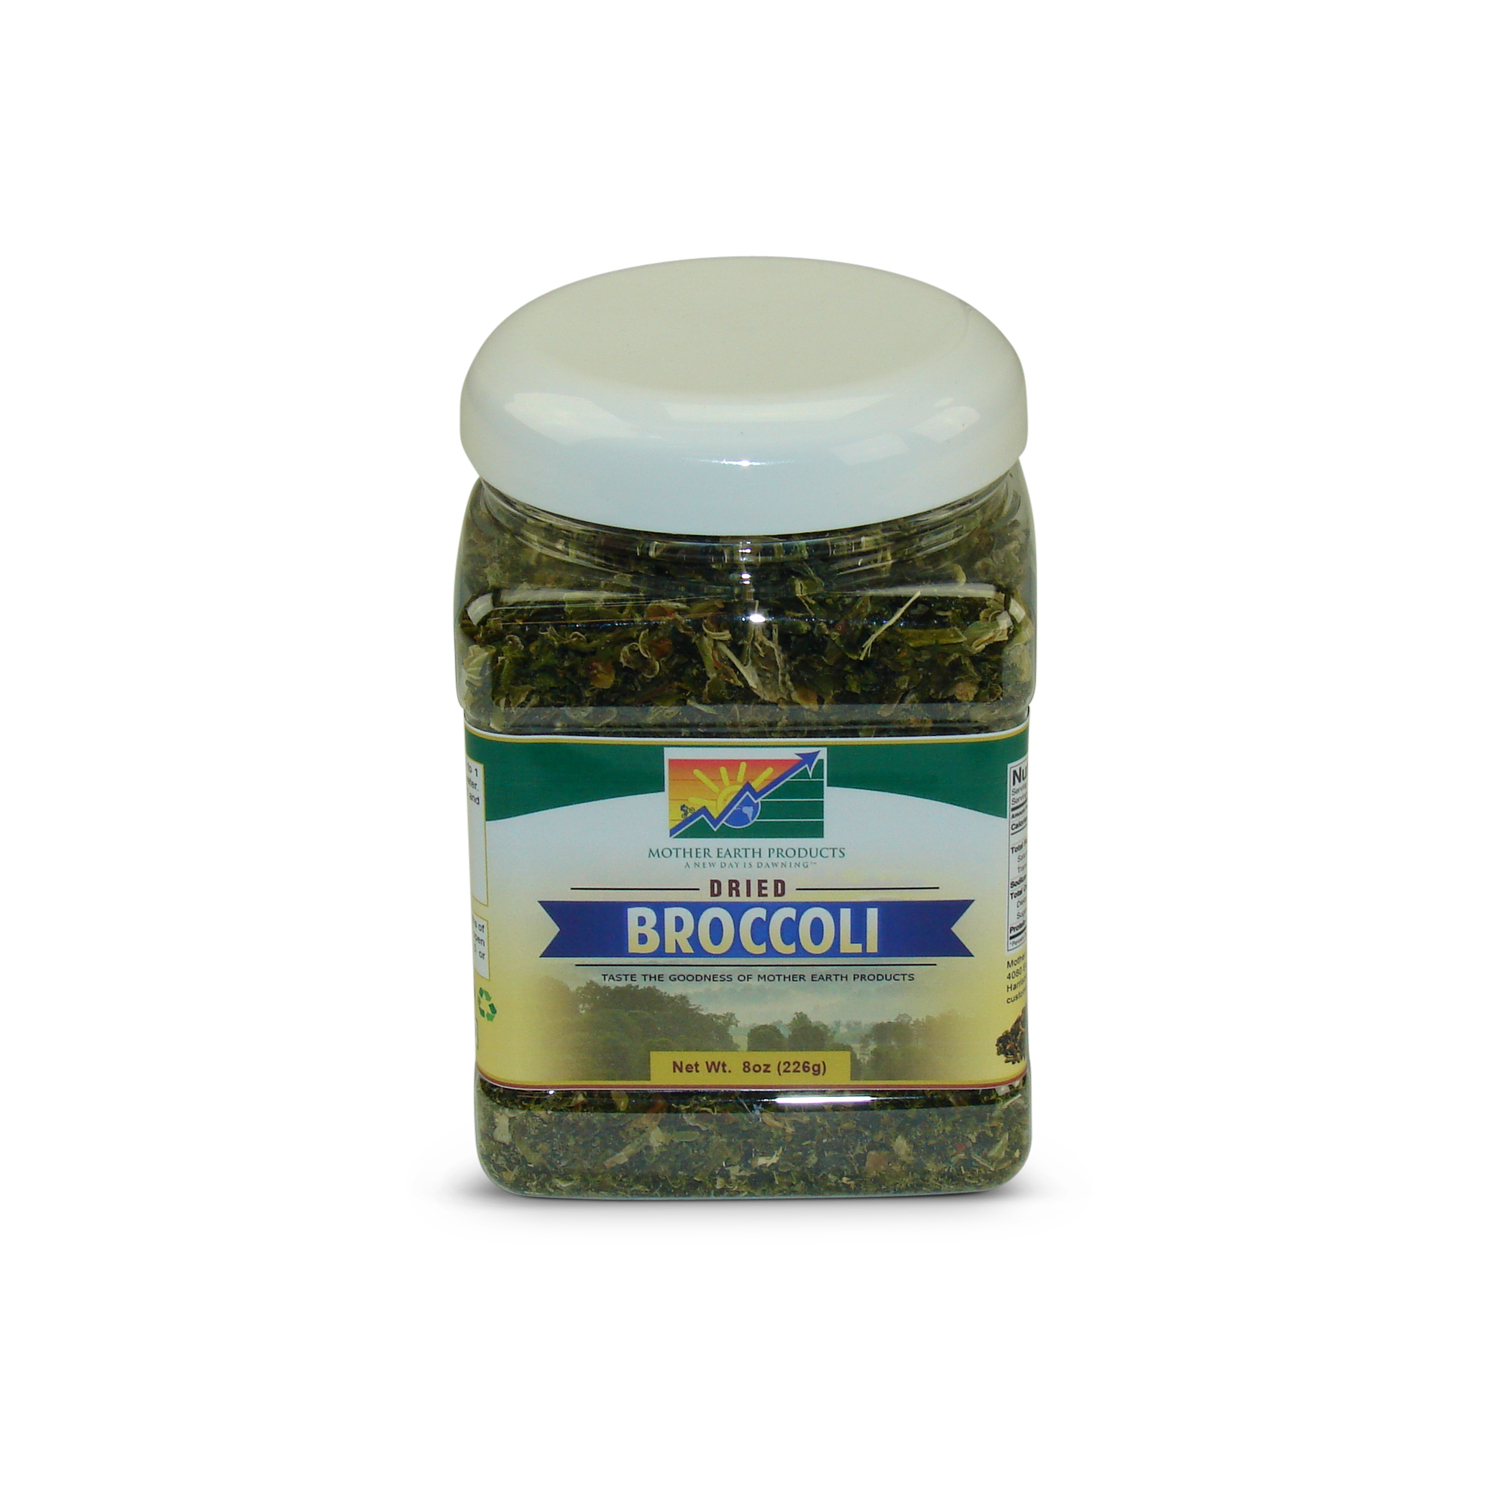 Mother Earth Products Dehydrated Broccoli, jar by Mother Earth Products